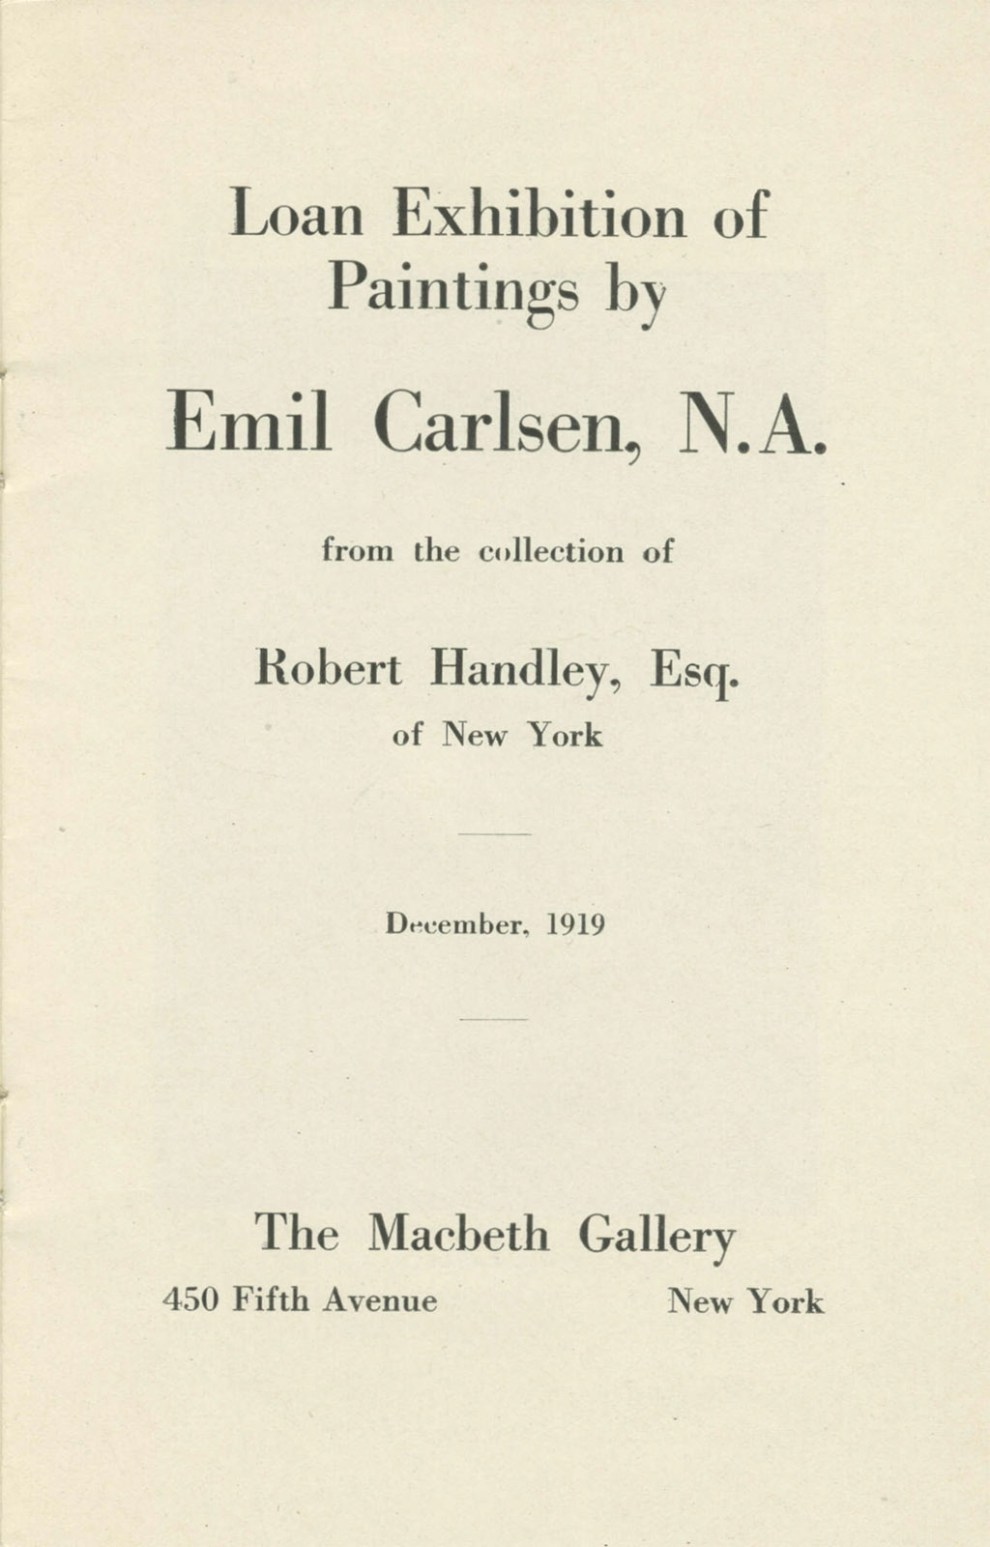 """1919 The Macbeth Gallery, 450 Fifth Avenue, New York, NY, Exhibition Catalog, """"Loan Exhibition of Paintings by Emil Carlsen, N.A. from the collection of Robert Handley, Esq. of New York"""", December"""